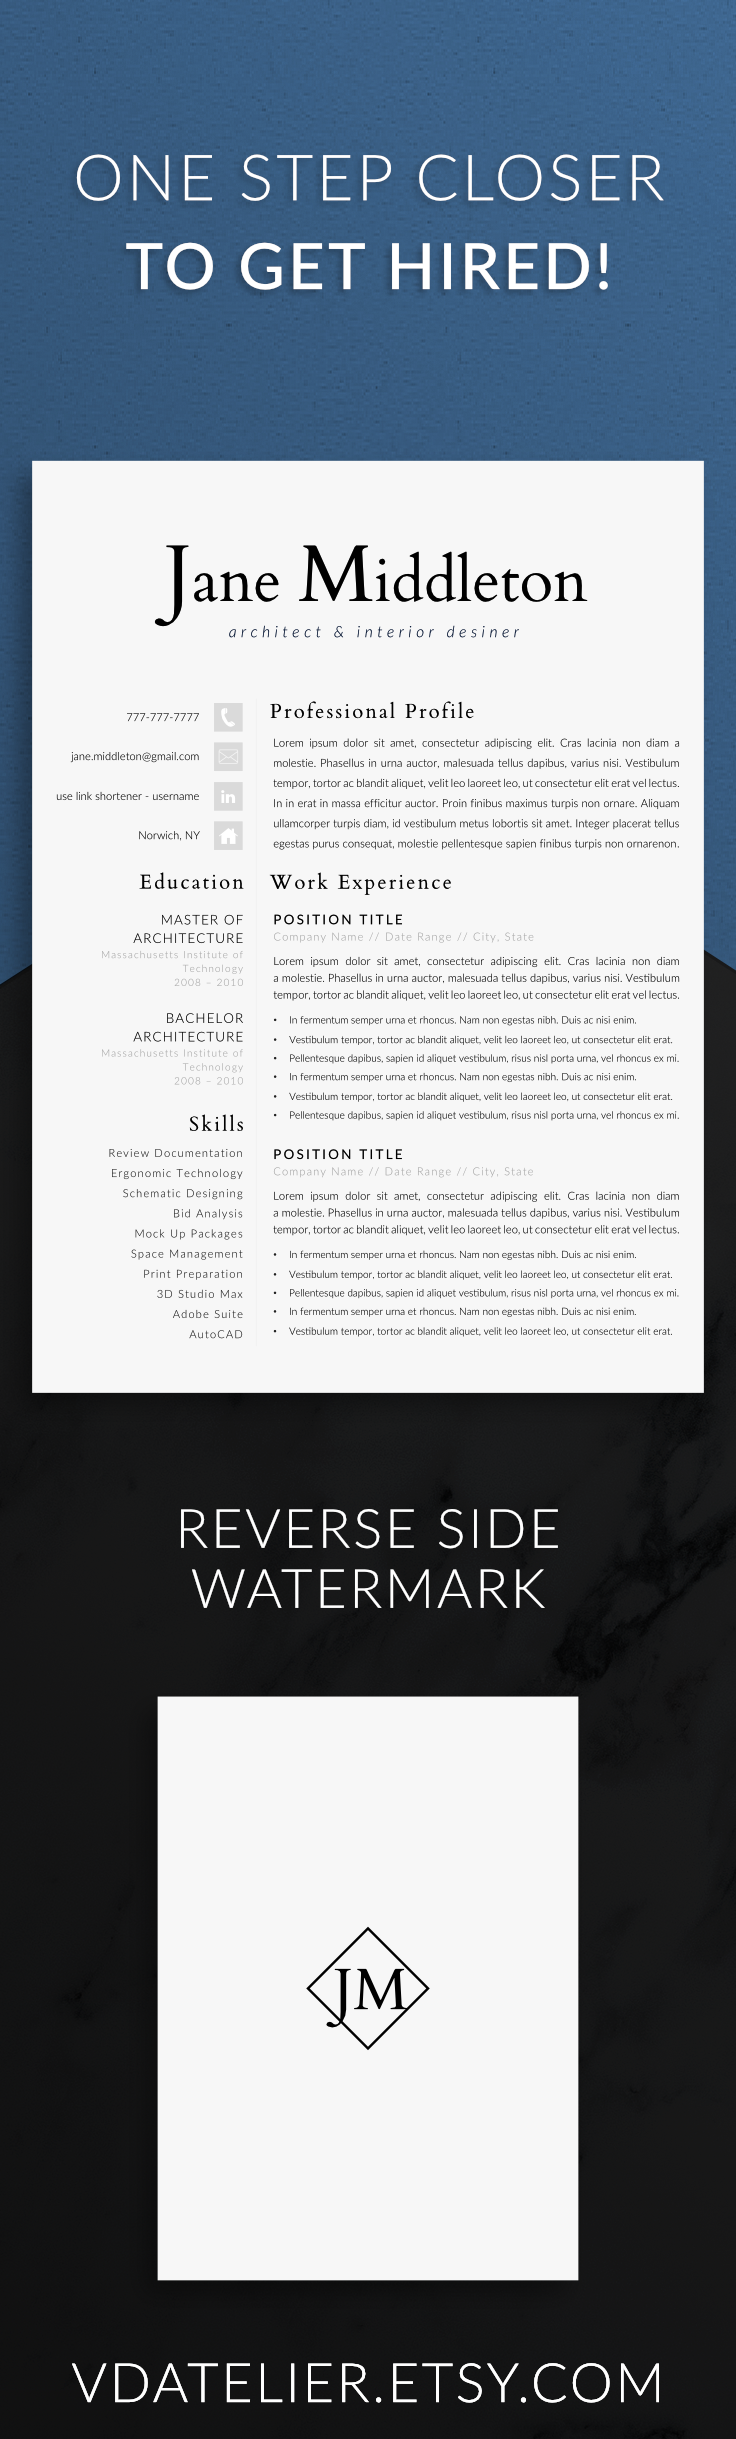 Resume Template For Modern Professionals Present Your Skills